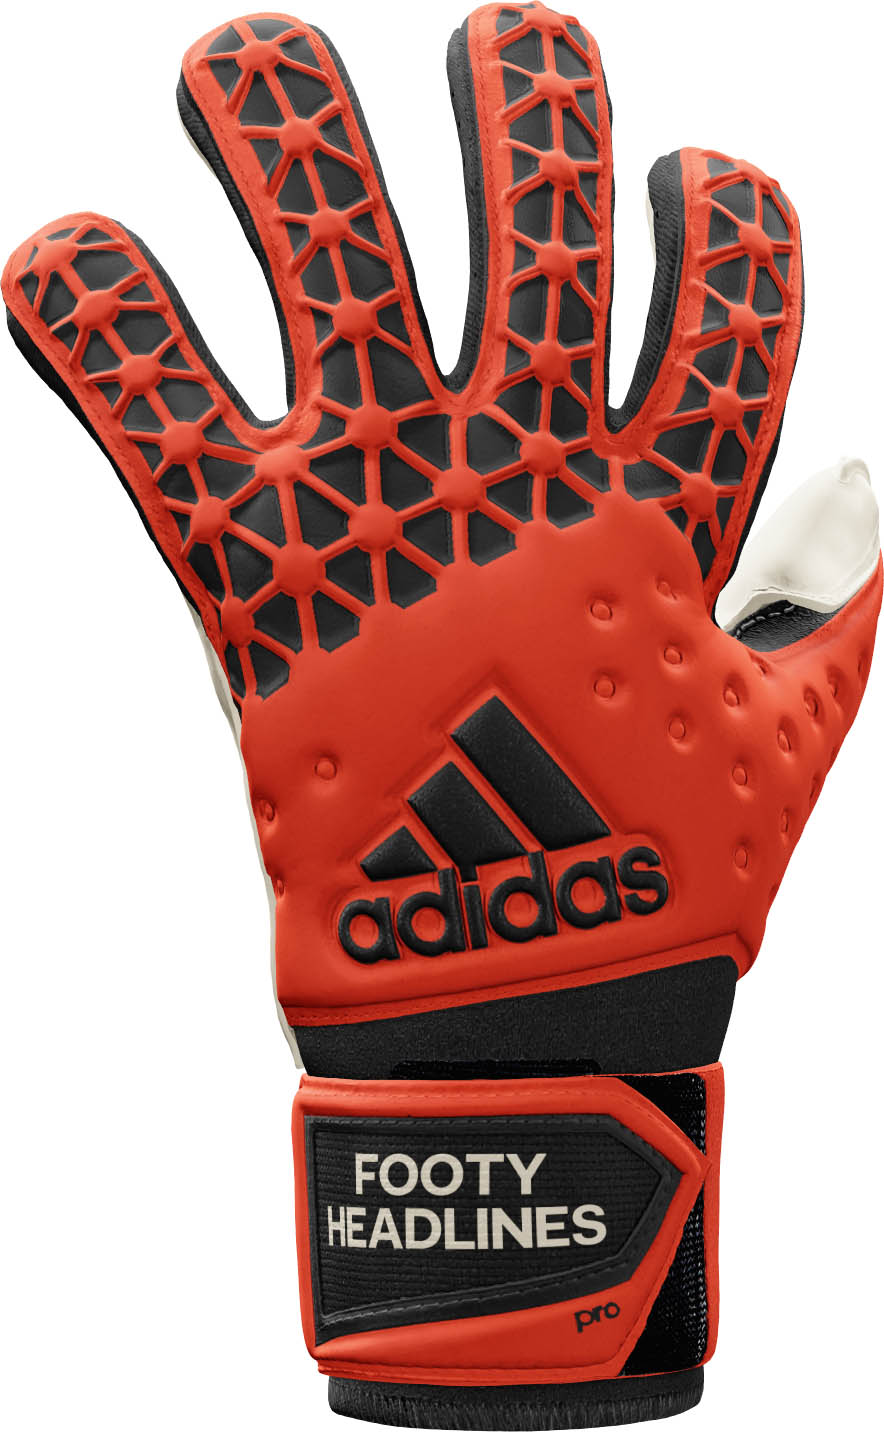 Gang tay thu mon Adidas Ace miAdidas www.soccerstore.vn